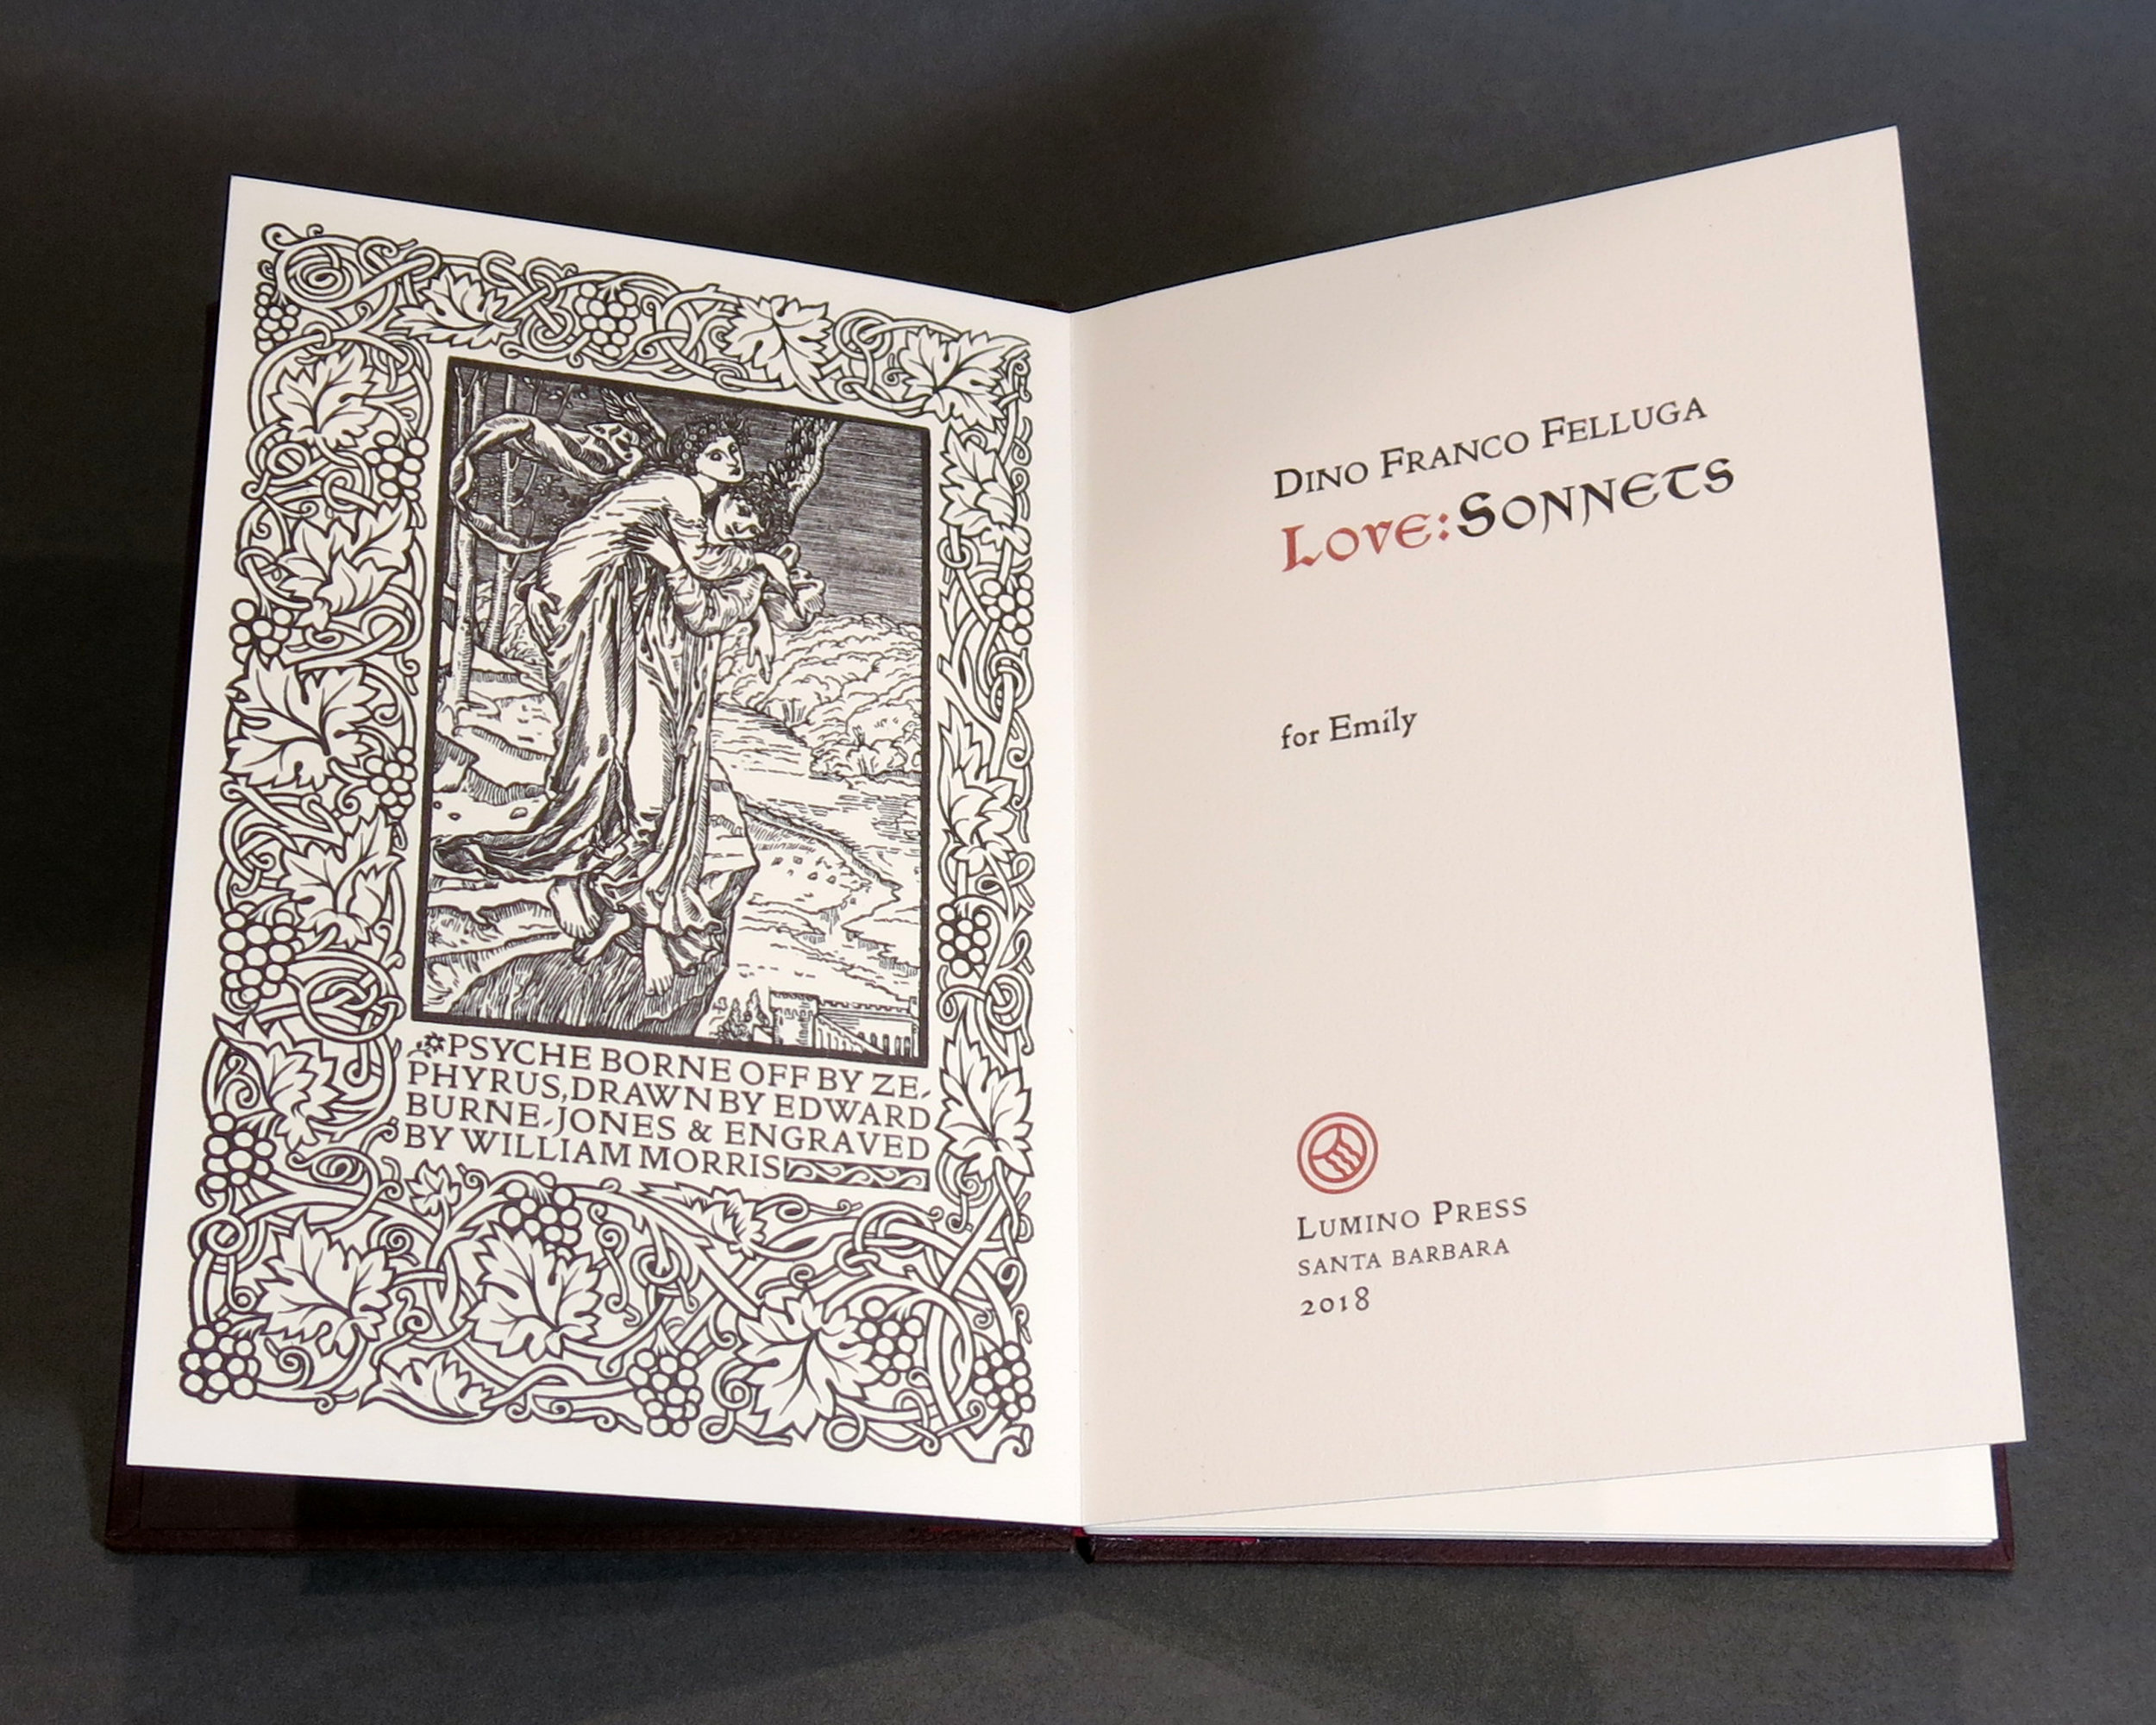 Love-Sonnet title page IMG_2598.jpg